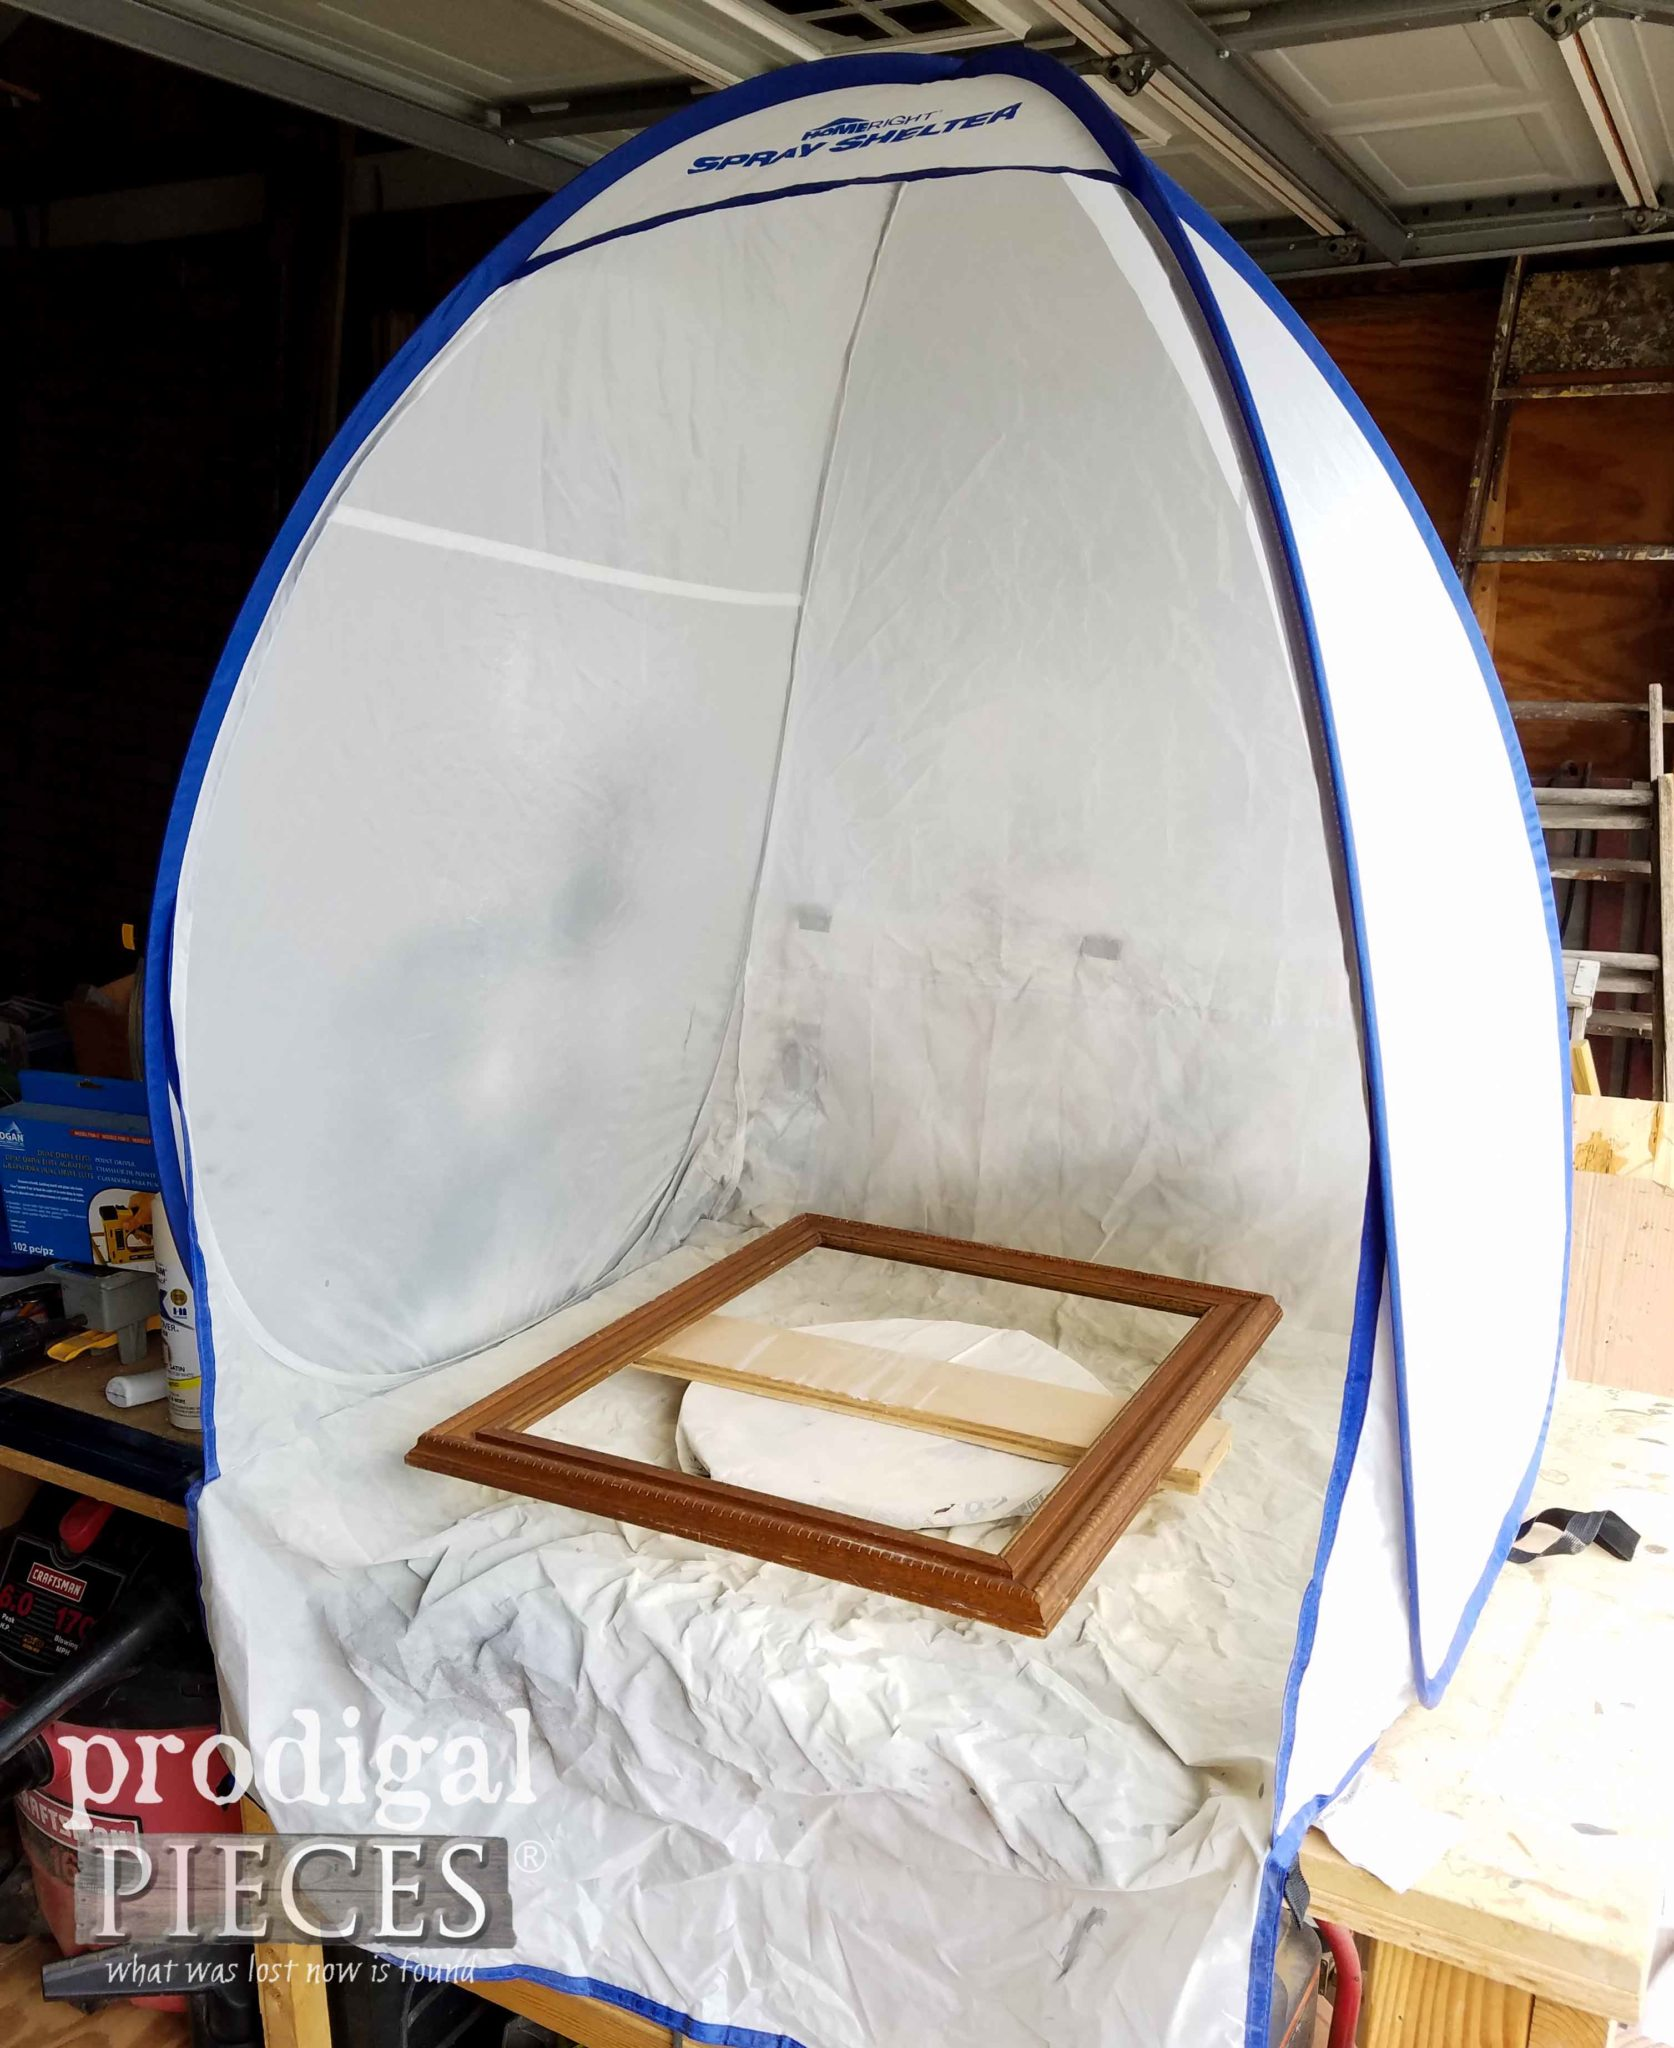 HomeRight Small Spray Shelter for Painting Picture Frames by Prodigal Pieces | prodigalpieces.com